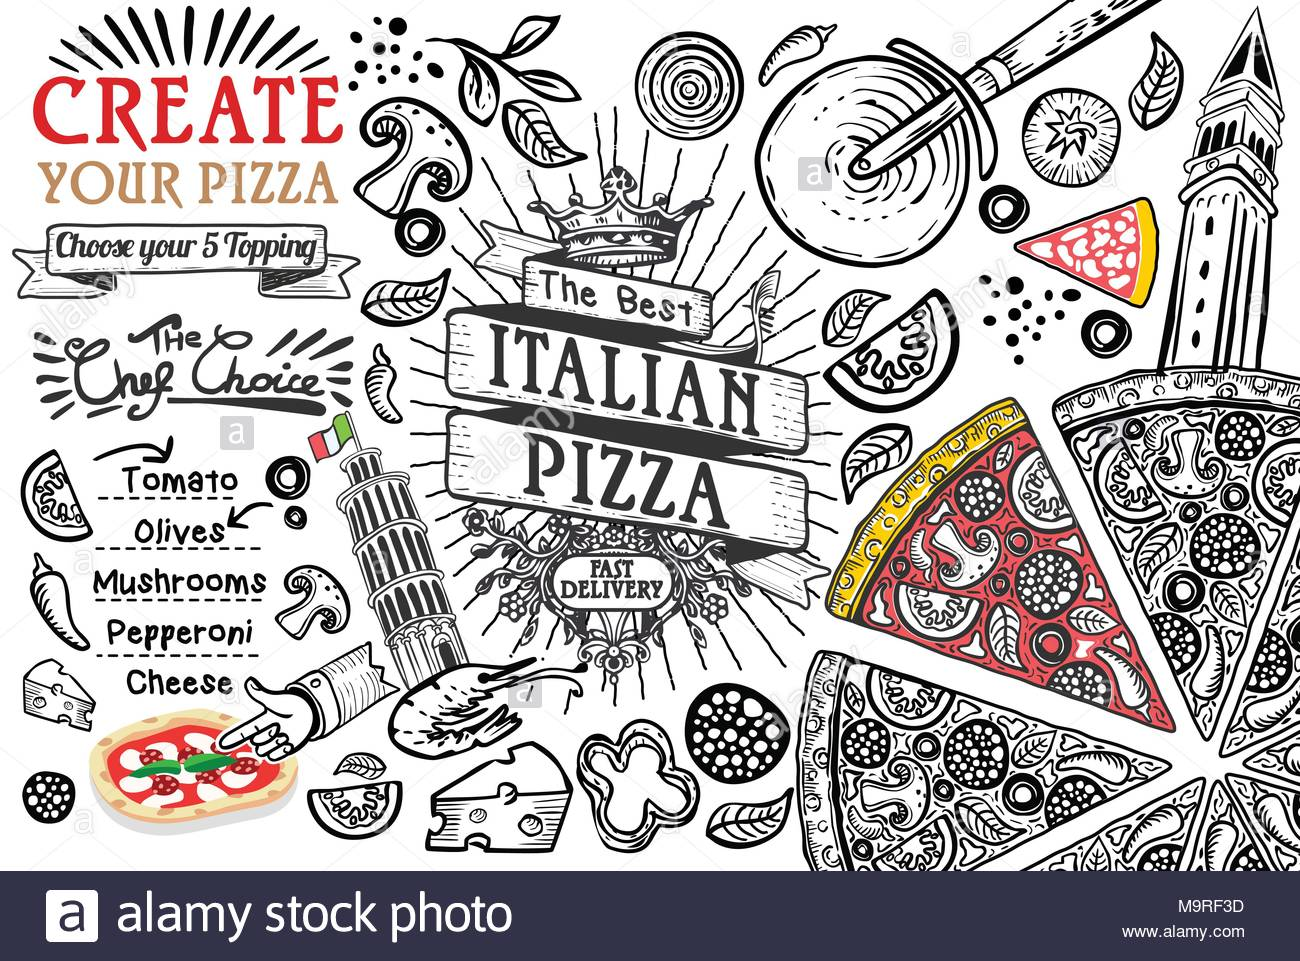 italian food ingredients in top view this is a pizza restaurant